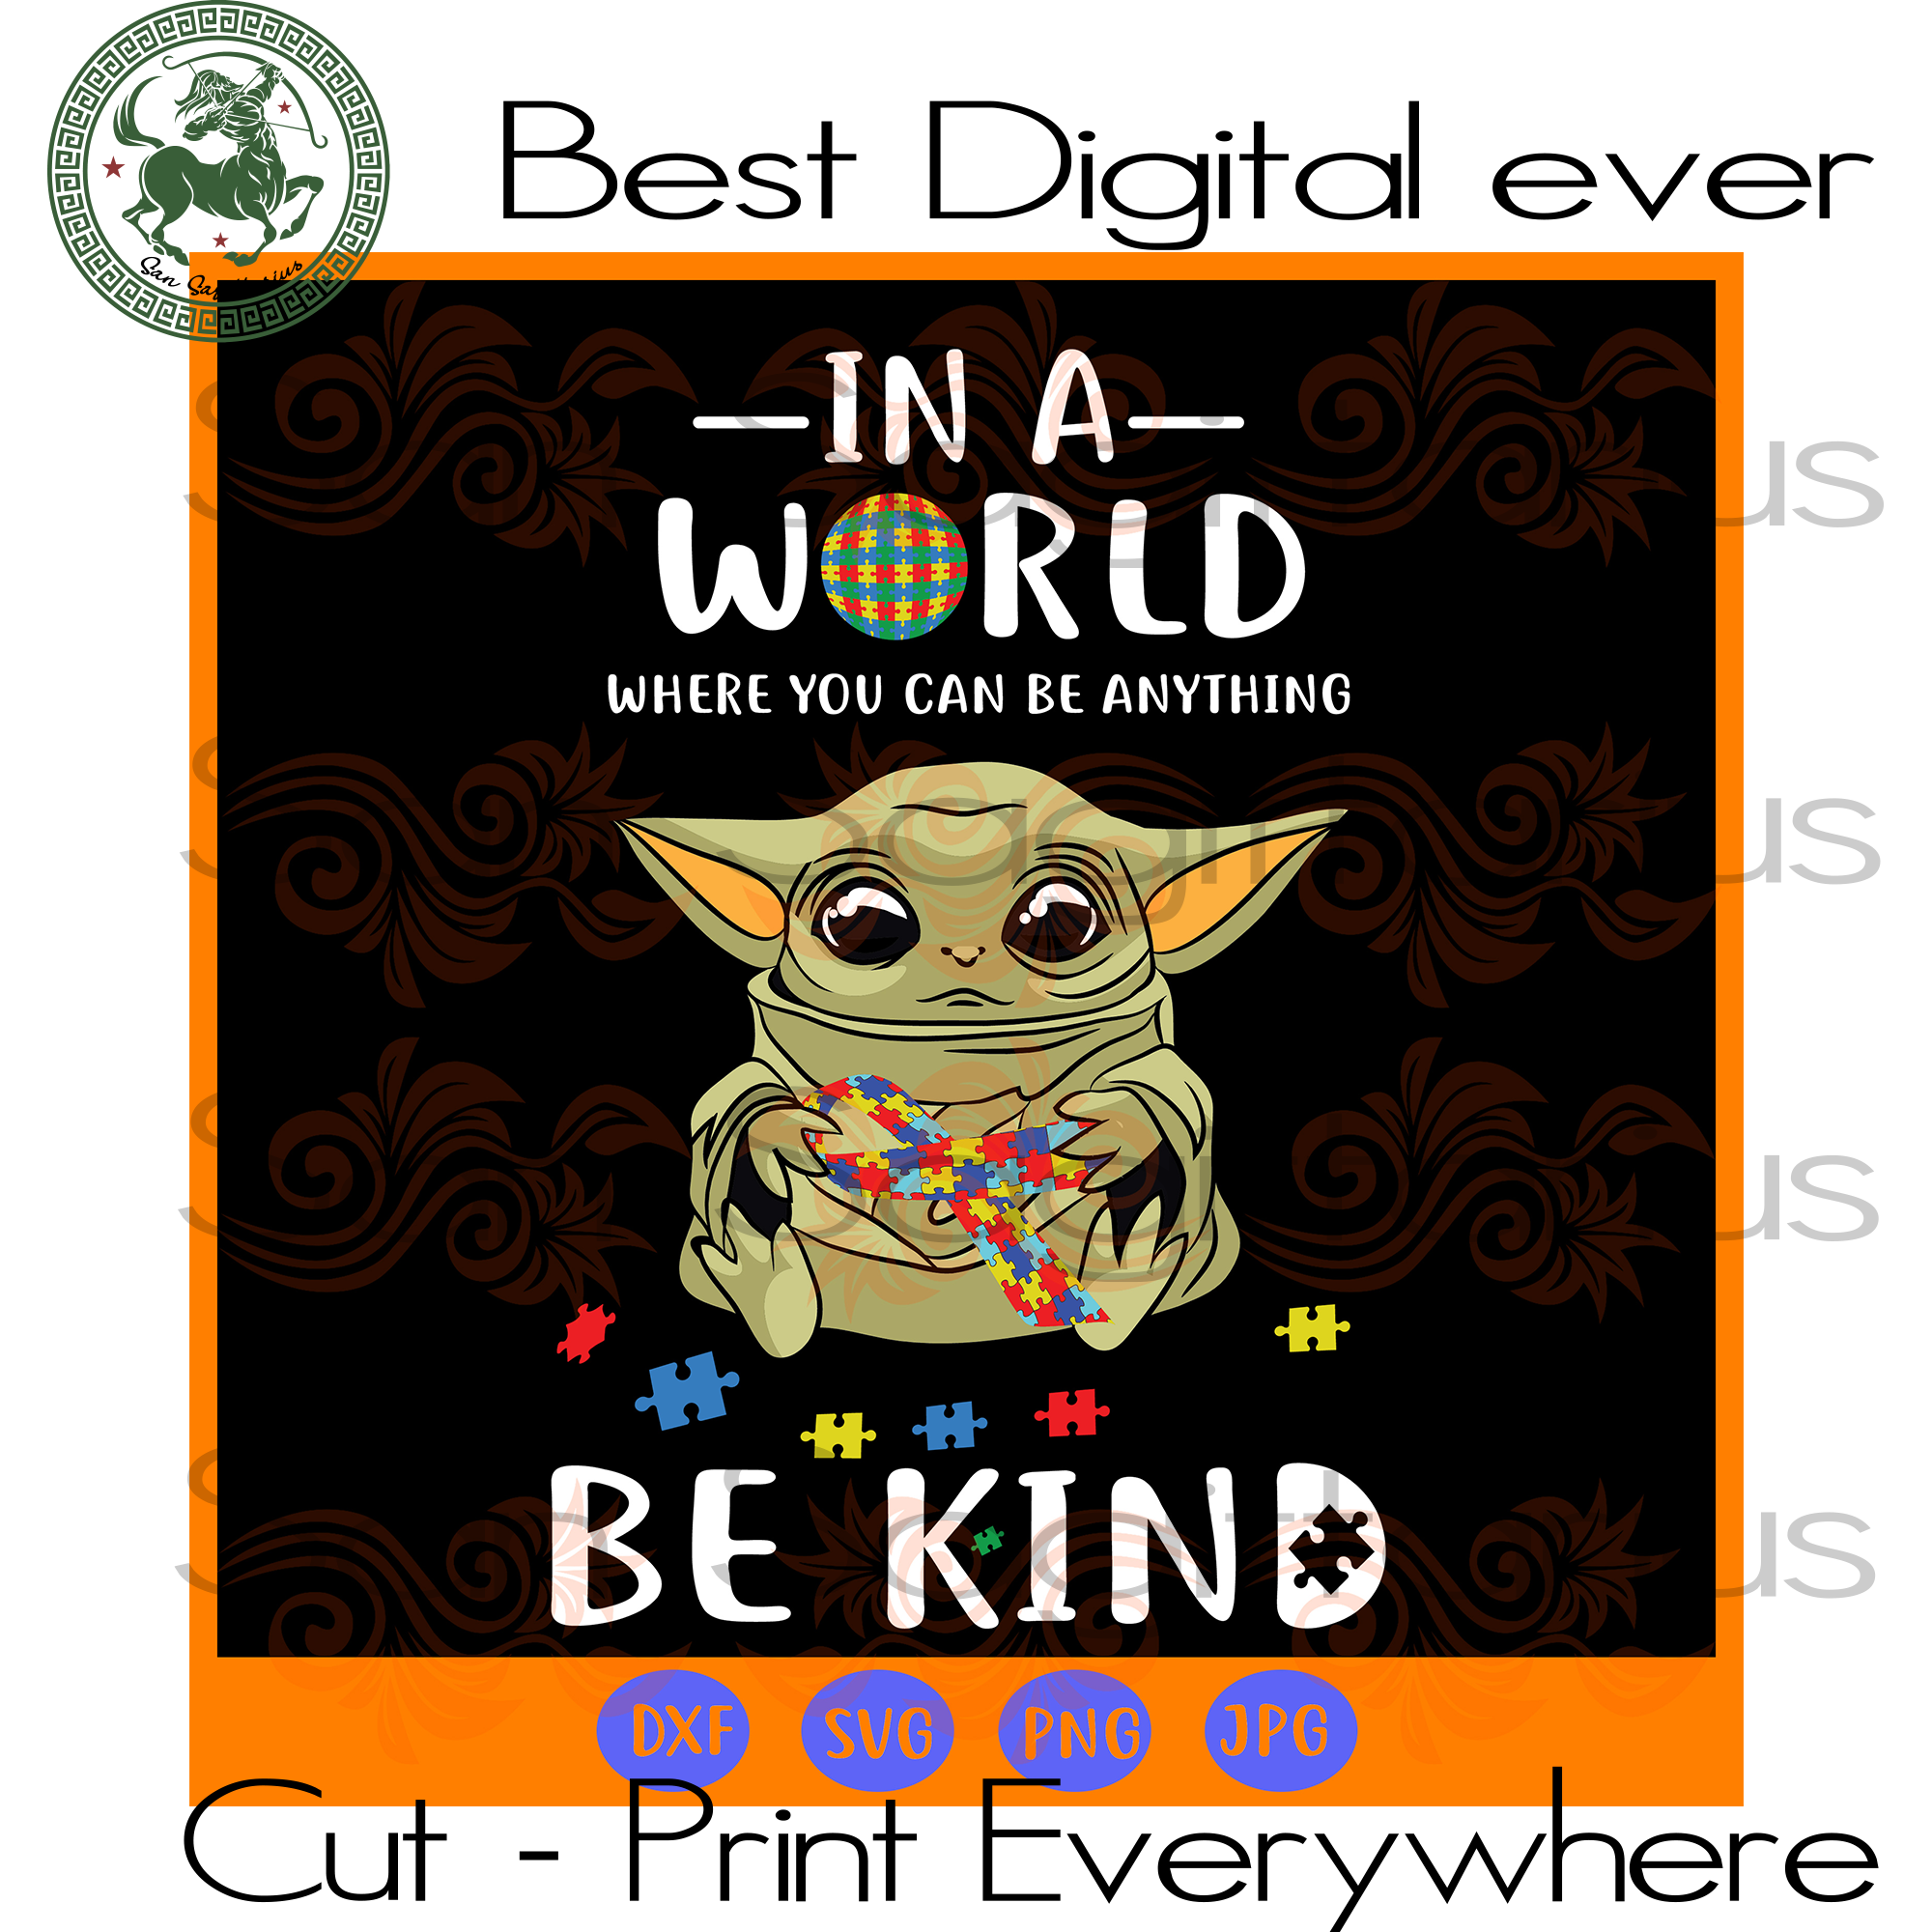 In a world where you can be a anything be kind SVG Files For Silhouette, Cricut Files, SVG DXF EPS PNG Instant Download